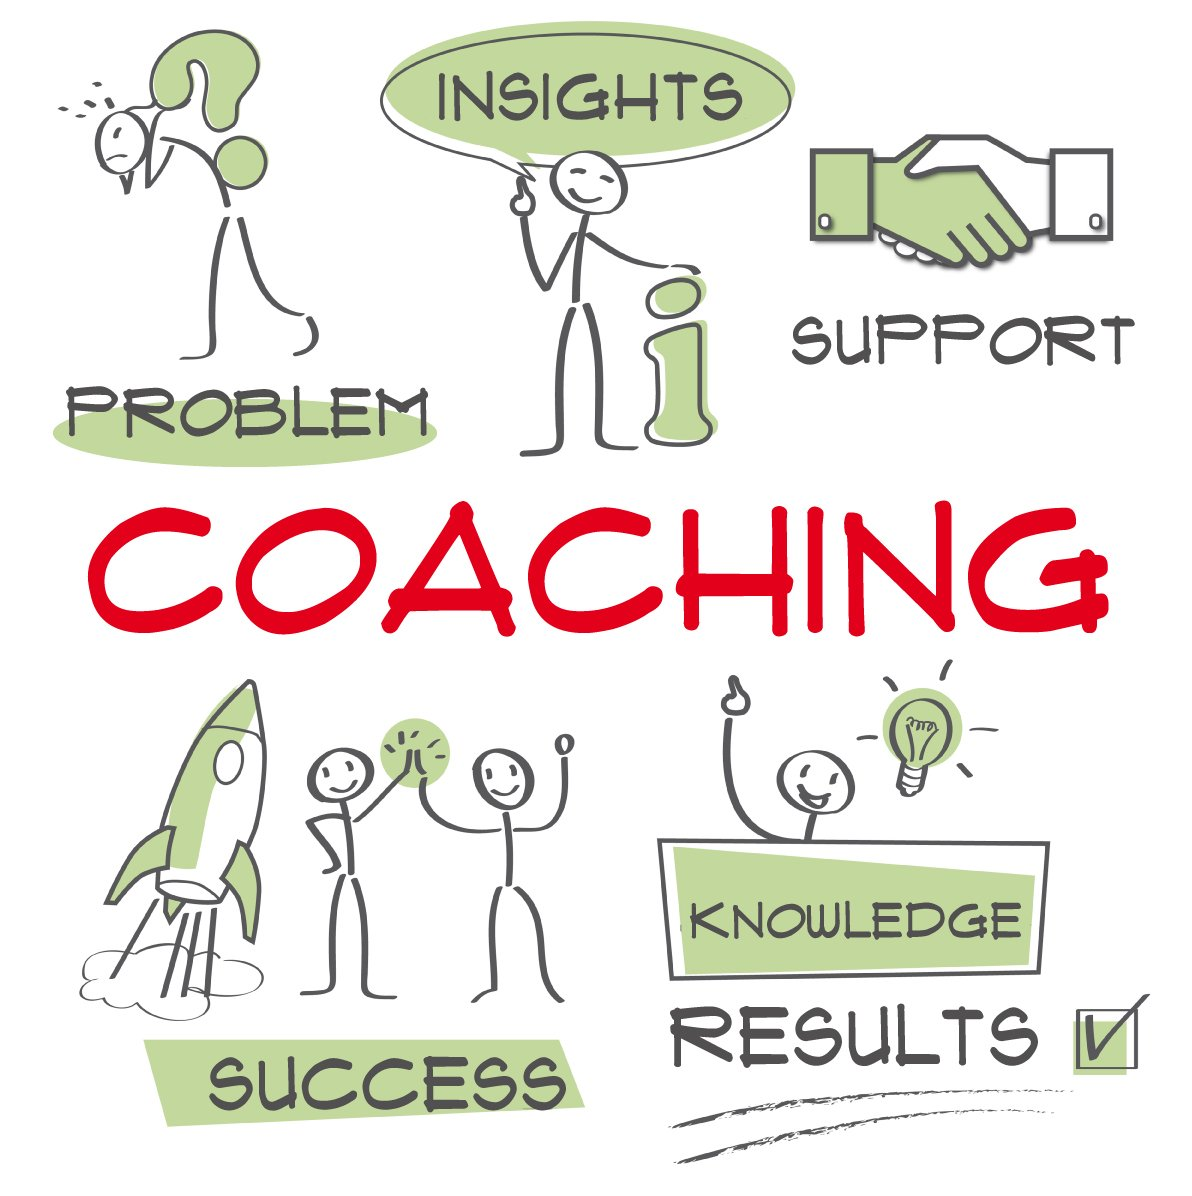 How Does Leadership Coaching Work, Anyway?